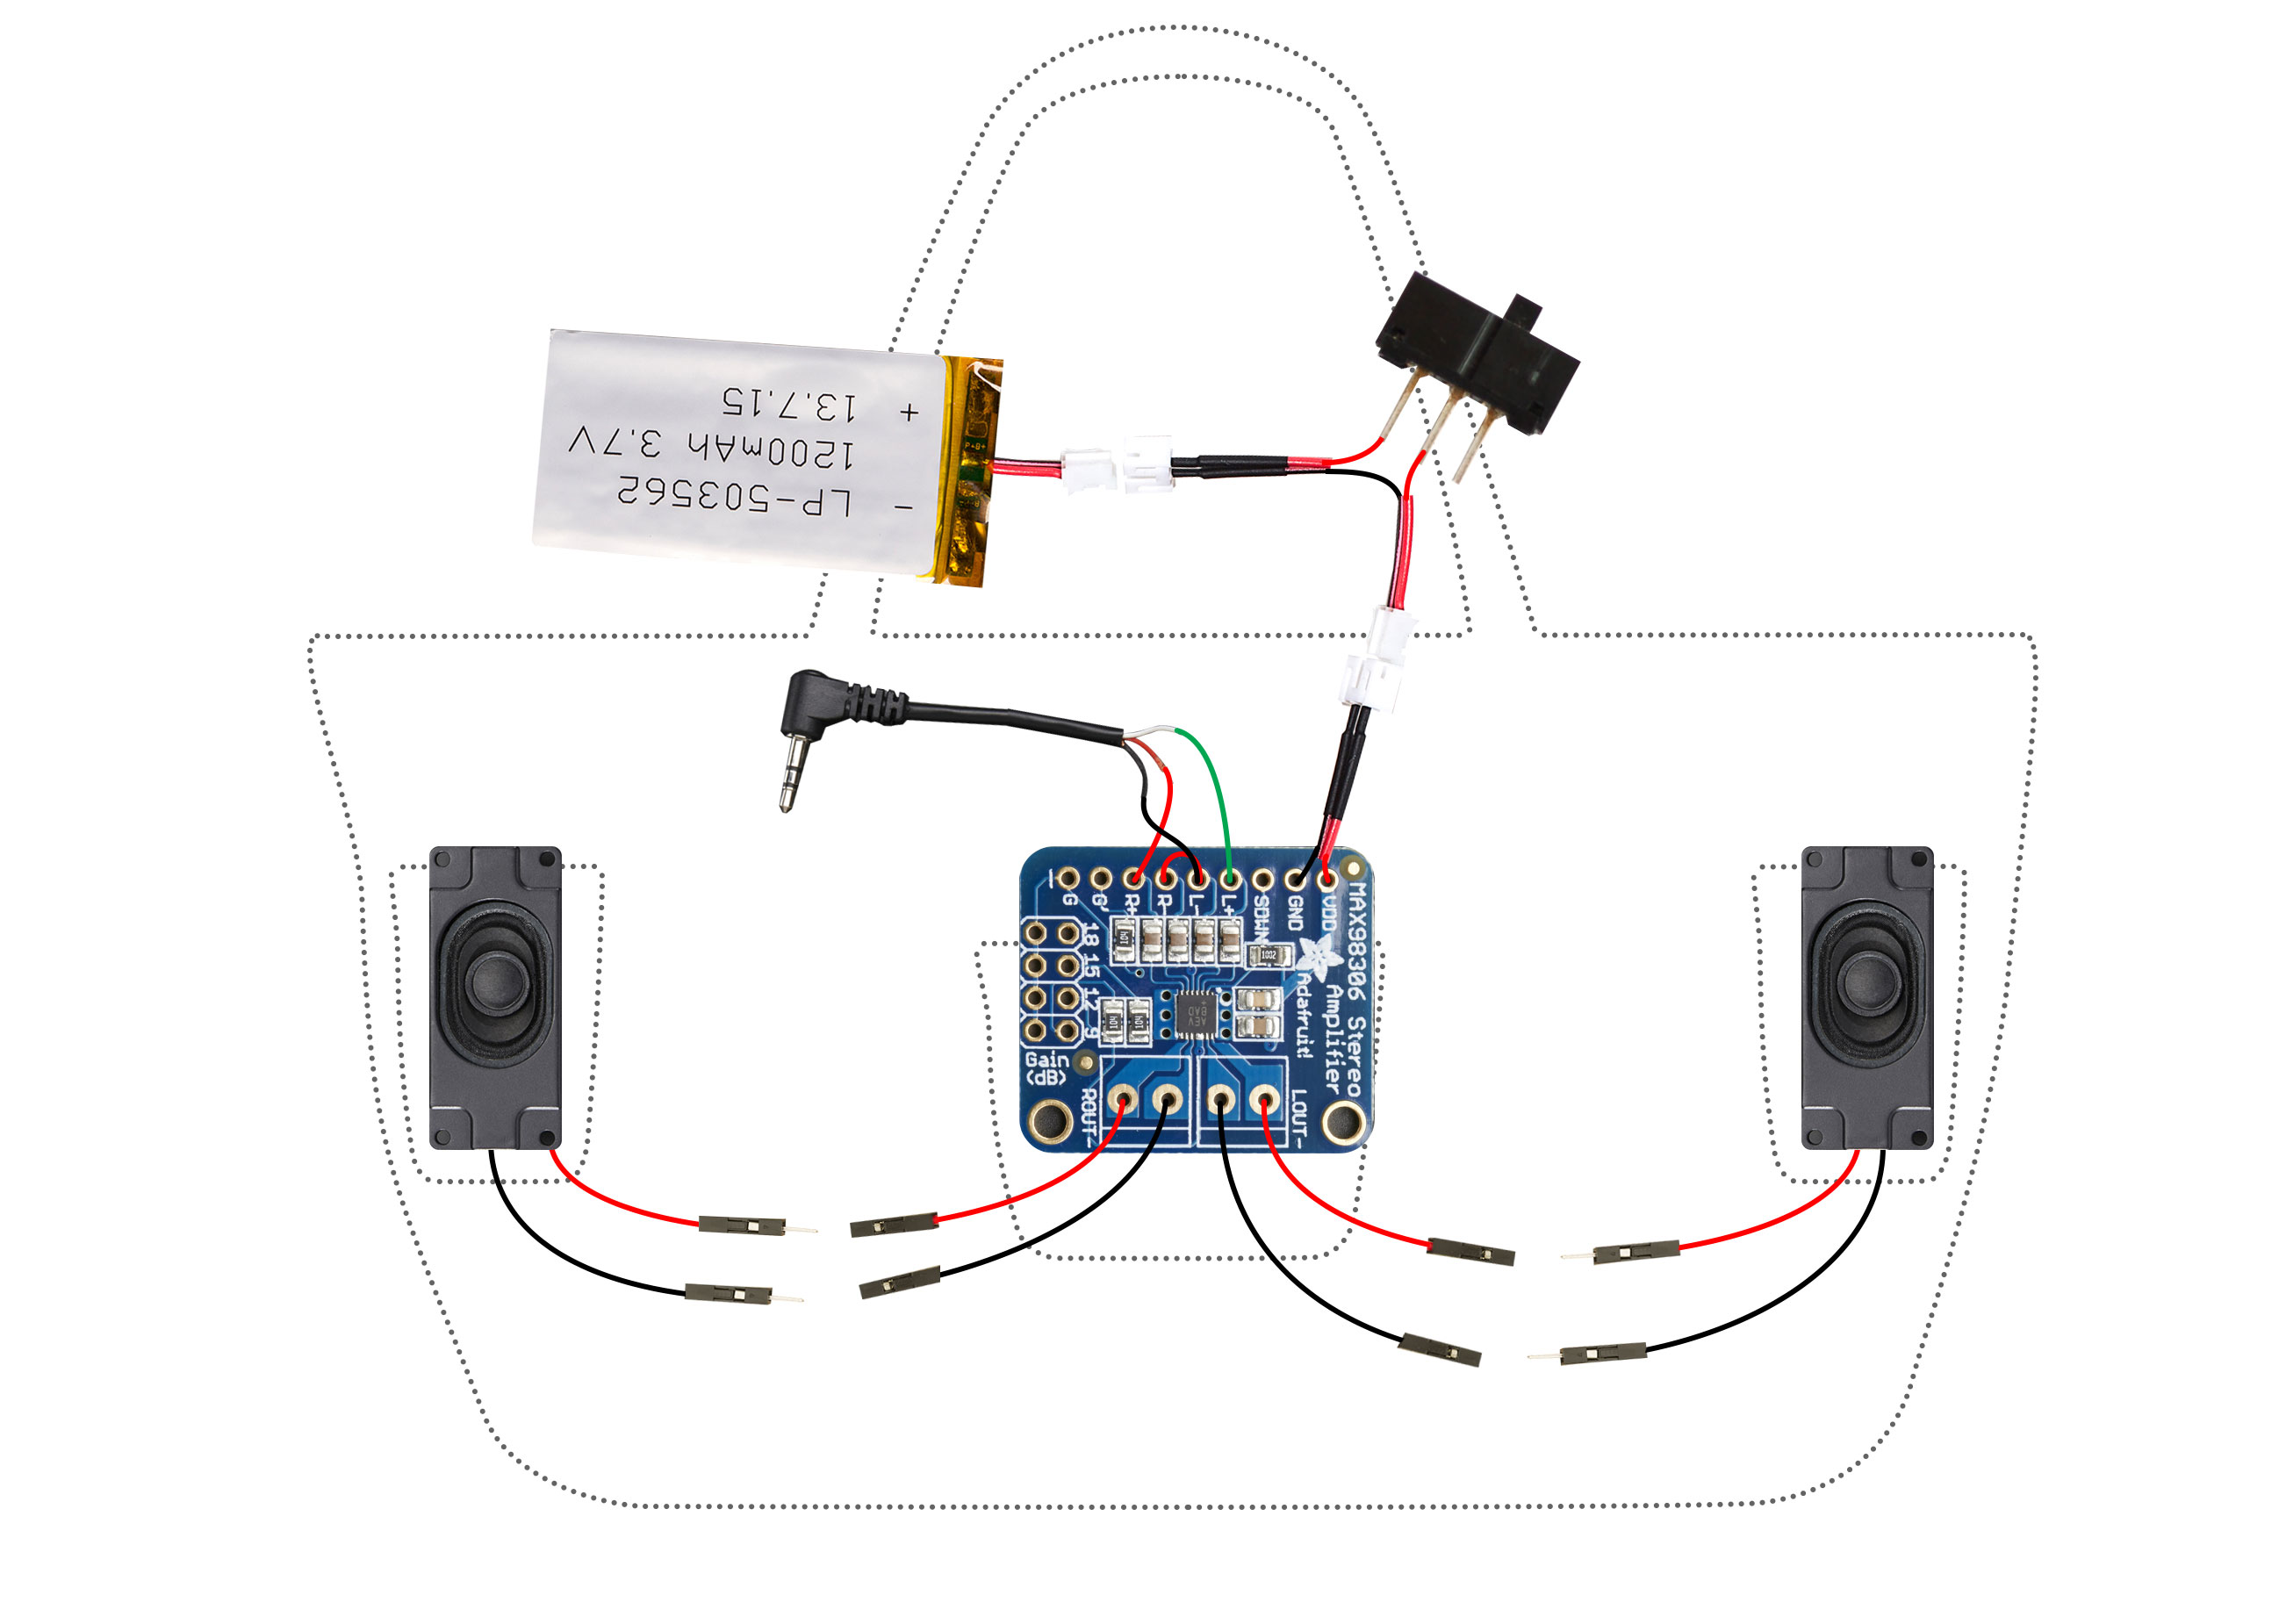 Bluetooth Speaker Wiring Diagram Free Download Just Wirings Headset Circuit Boombox Beach Bag With Audio Amp And Speakers Rh Learn Adafruit Com Skullcandy Headphone Wireless